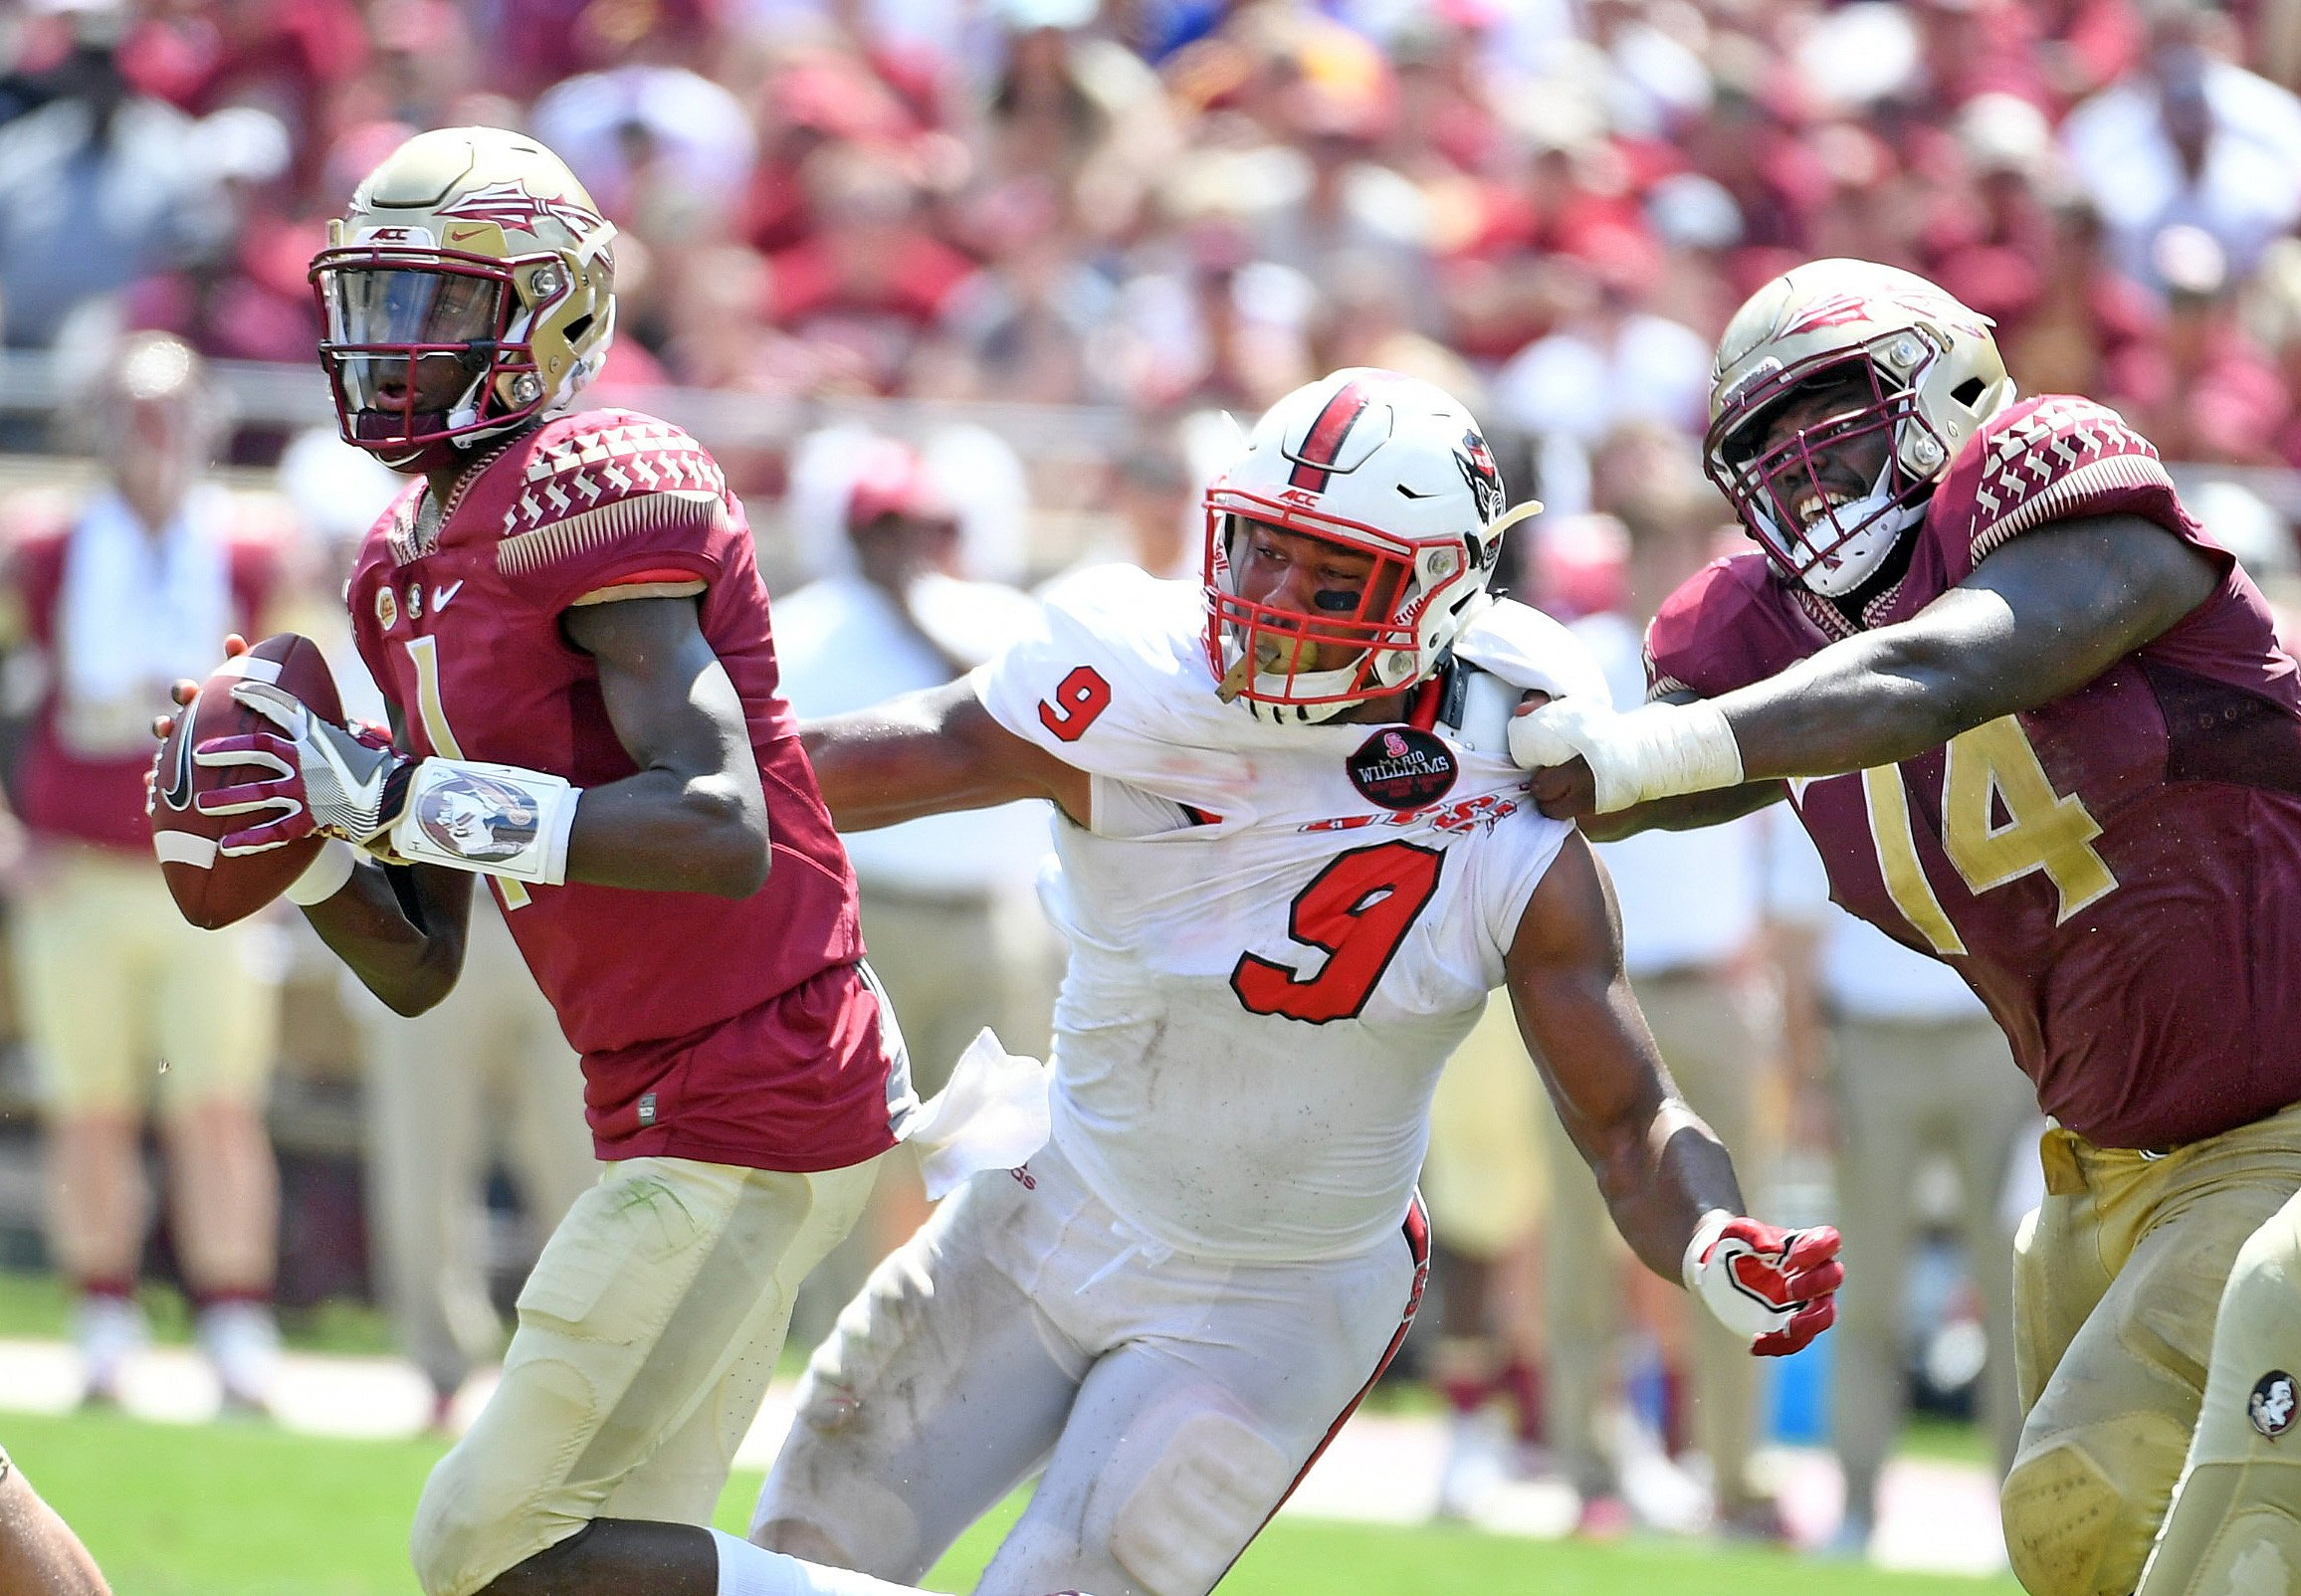 Florida State edges Wake Forest 26-19, avoids rare 0-3 start